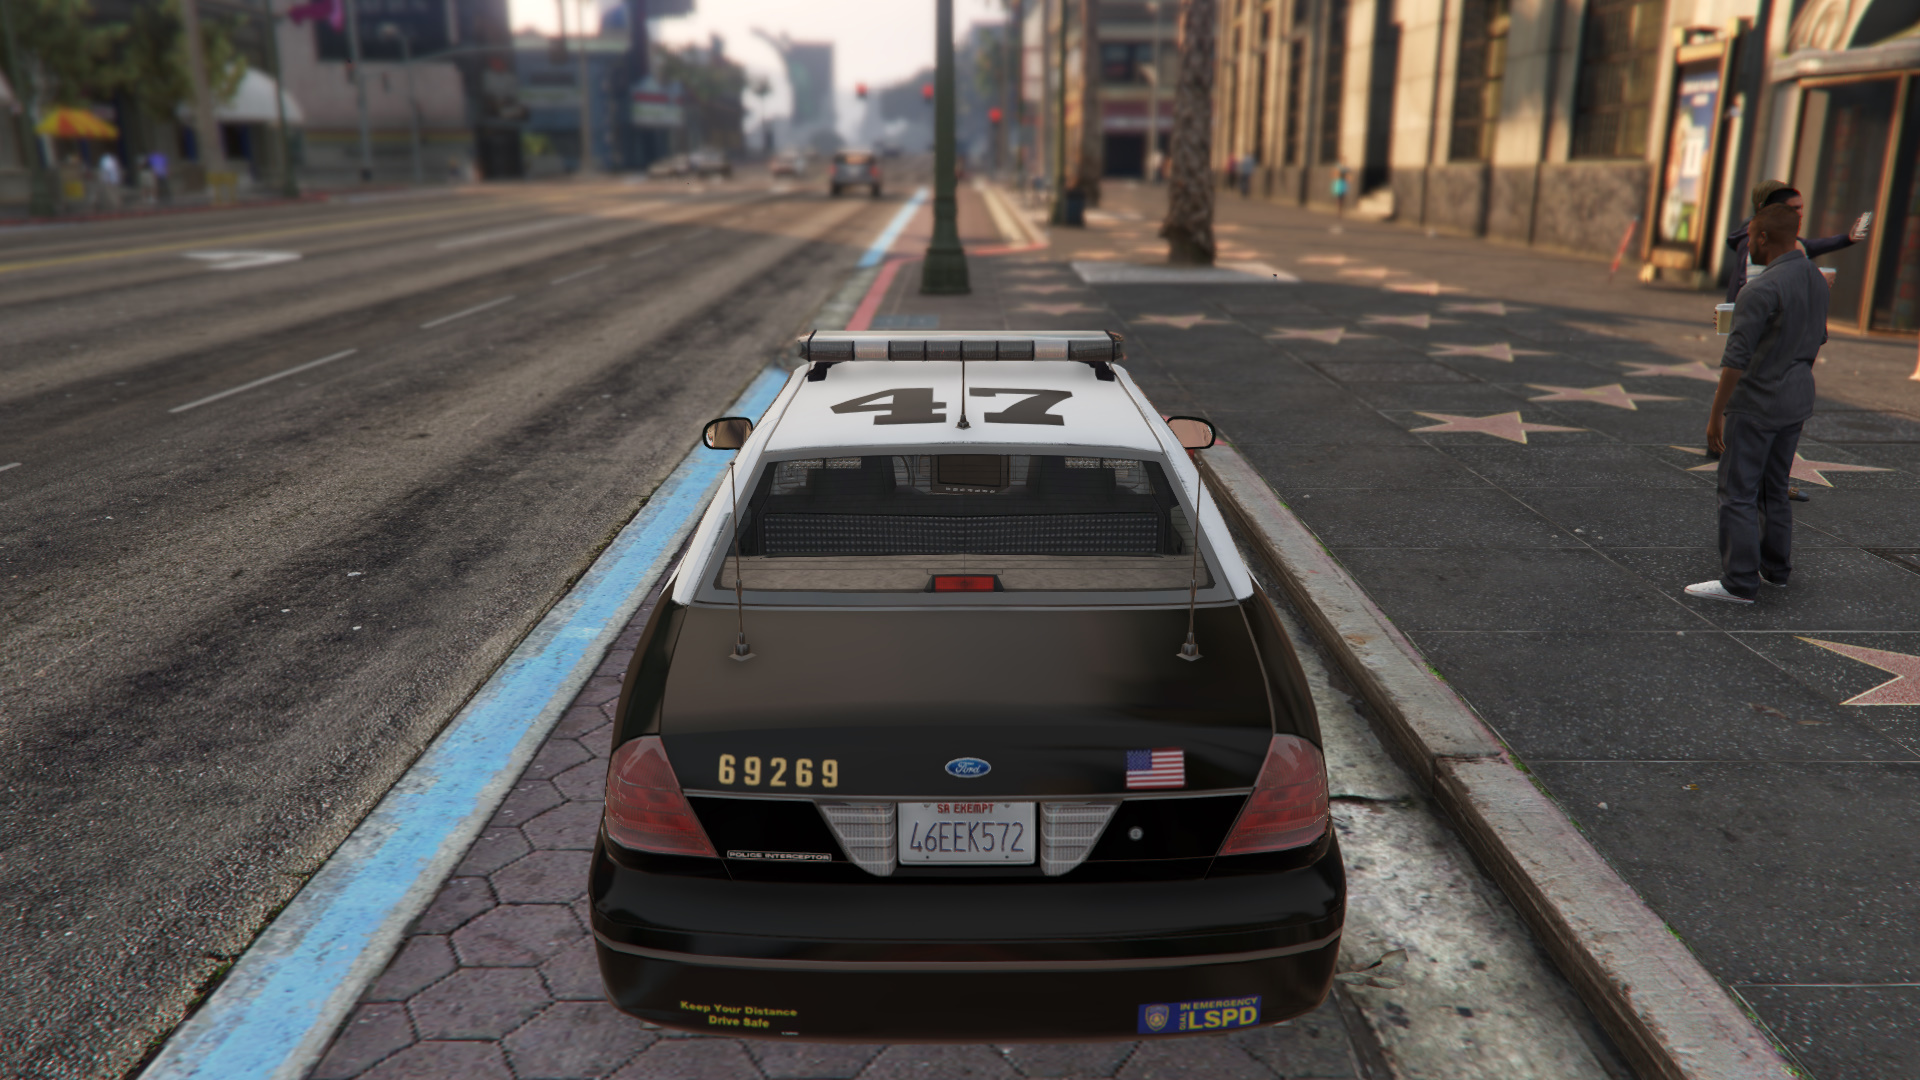 1999 ford crown victoria with whelen edge lightbar gta5 mods 32dae1 gta5 2015 09 10 12 07 38 789 mozeypictures Choice Image